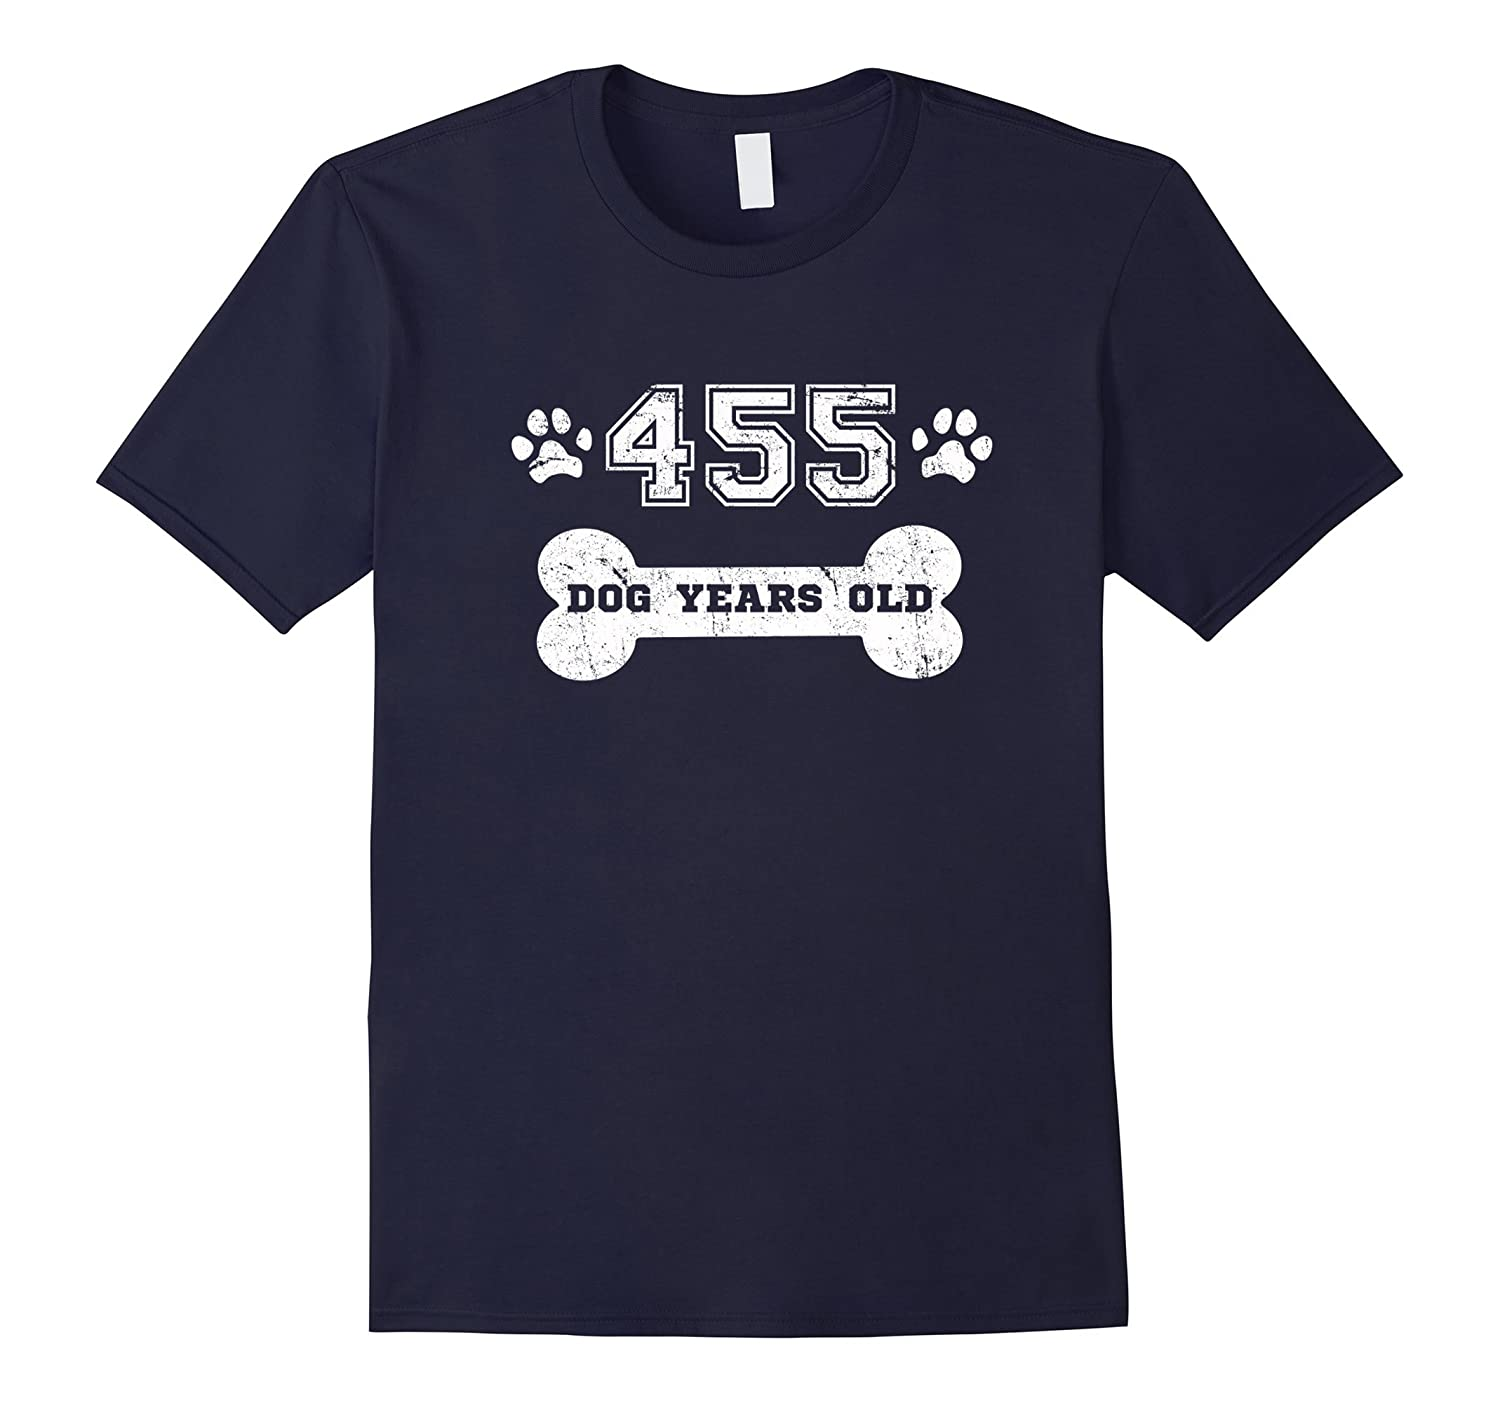 455 Dog Years Old T-Shirt 65th Birthday Gag Gift-TH